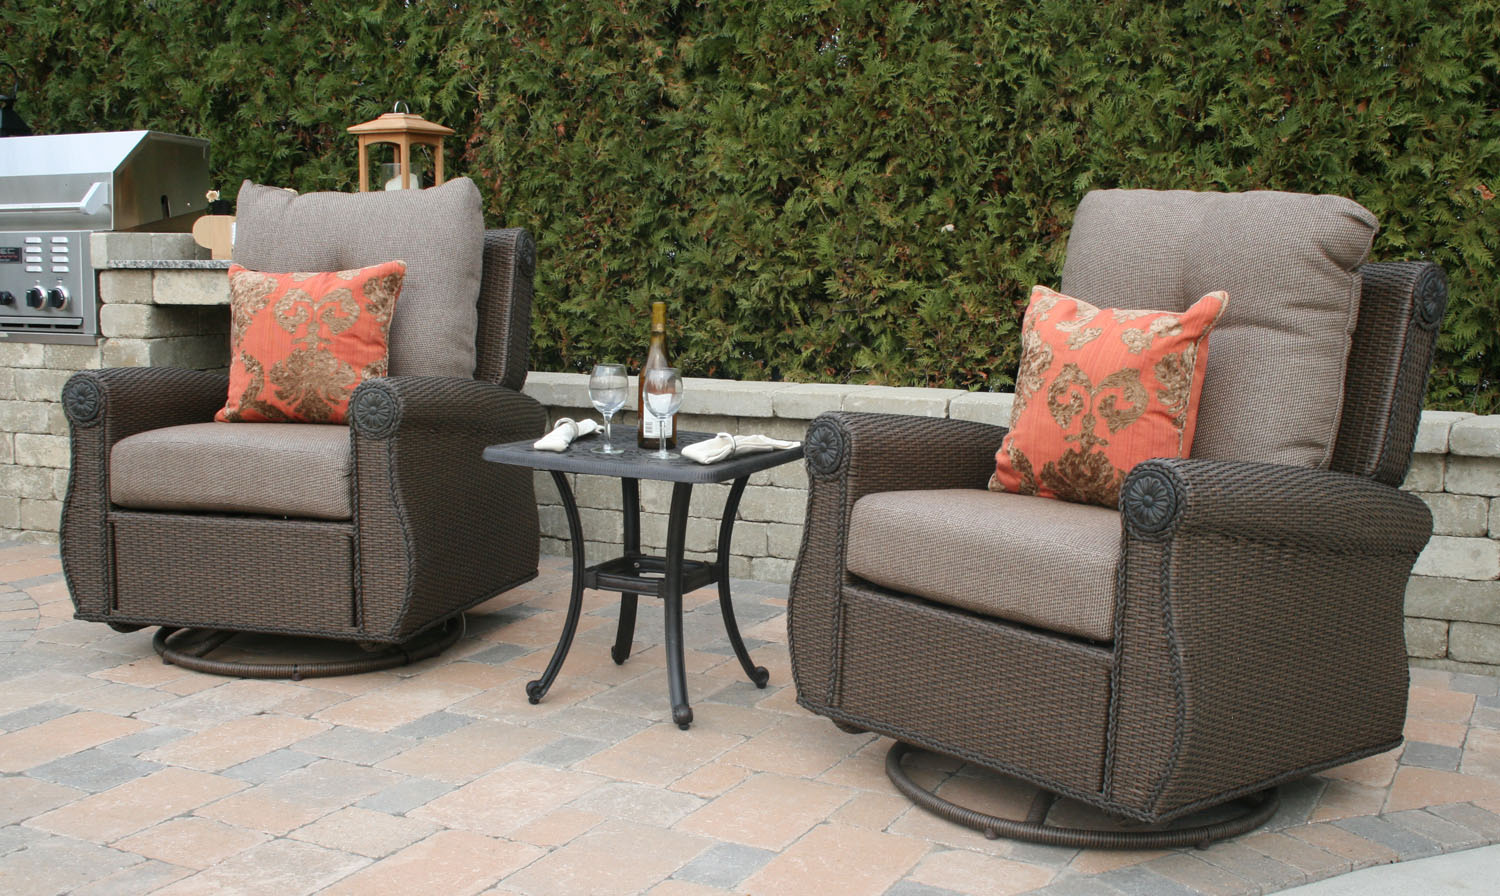 wicker chairs product of corvus overstock sarcelles free shipping patio set garden home modern today by